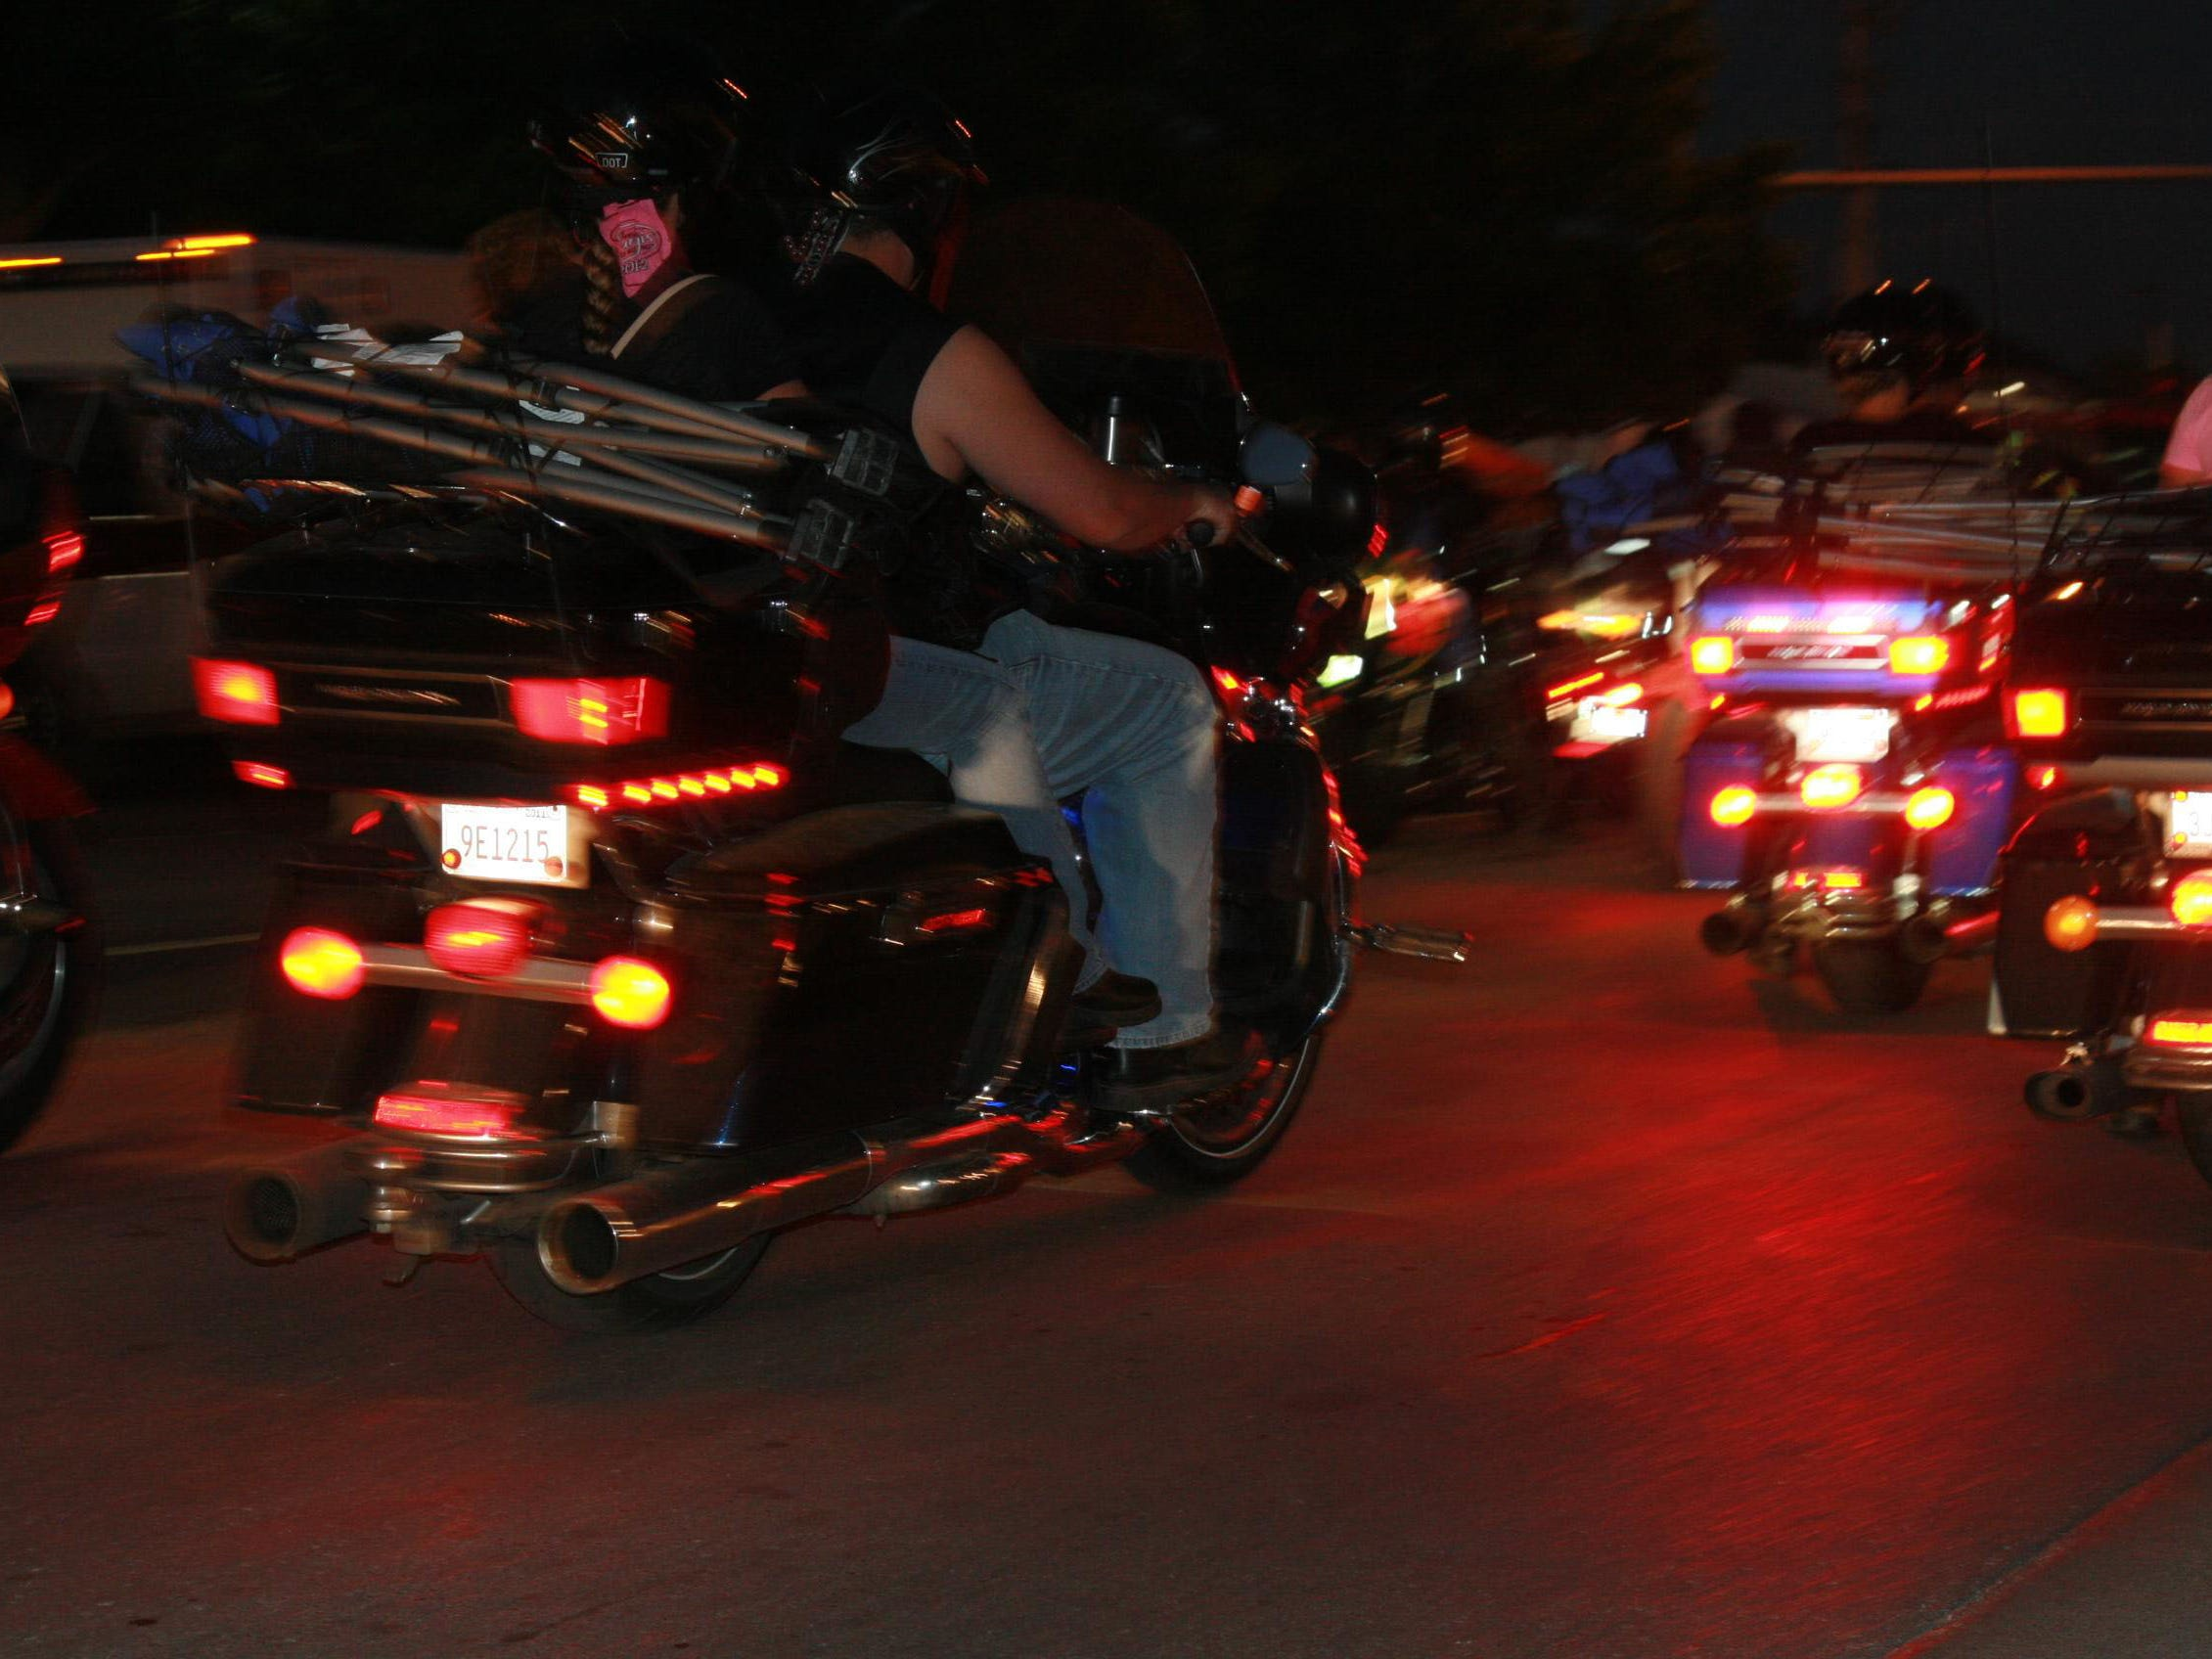 2012: The action during bike week in Sturgis lasts well into the evening. The annual rally draws visitors from around the country and the world.